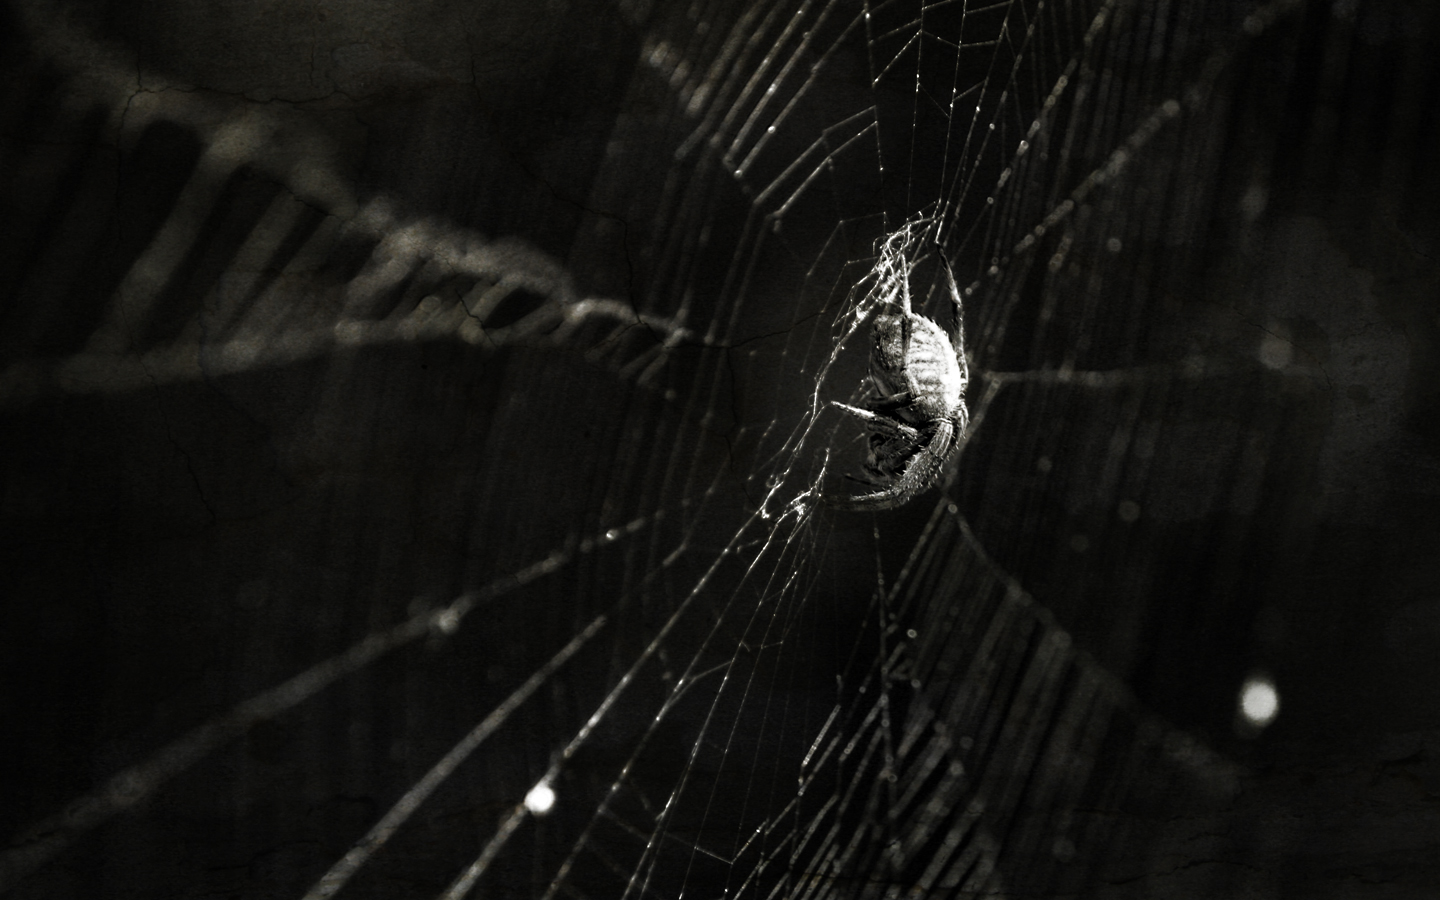 Black-and-white photo of a spider on a spider web